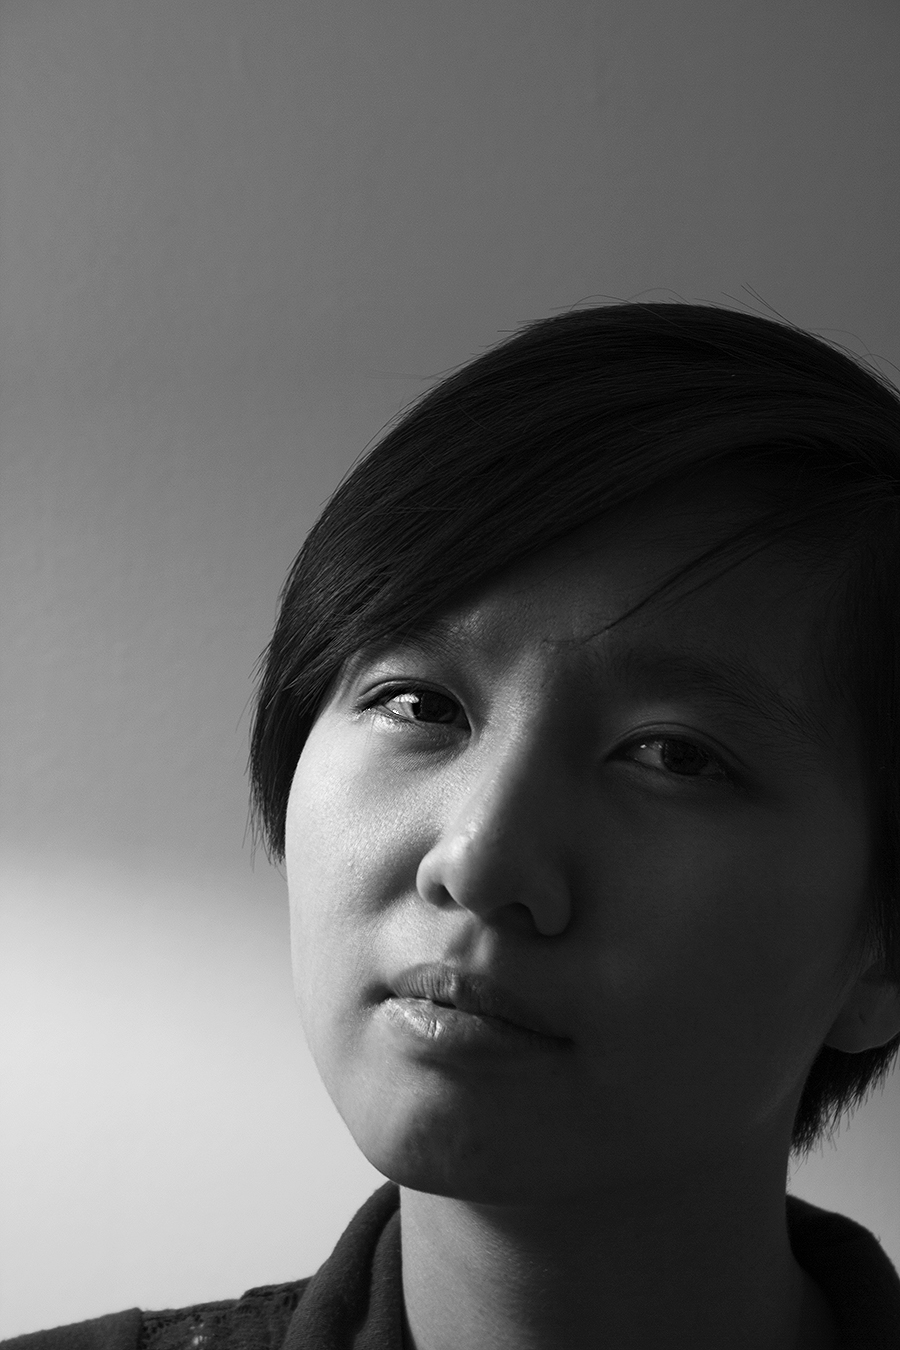 Portraiture_Gloria_Yuen_man_light_profile_Chinese_melancholy_pensive_Asian_aging_chinese_new_year_beauty_youth_short_hair_sexy_black_;white